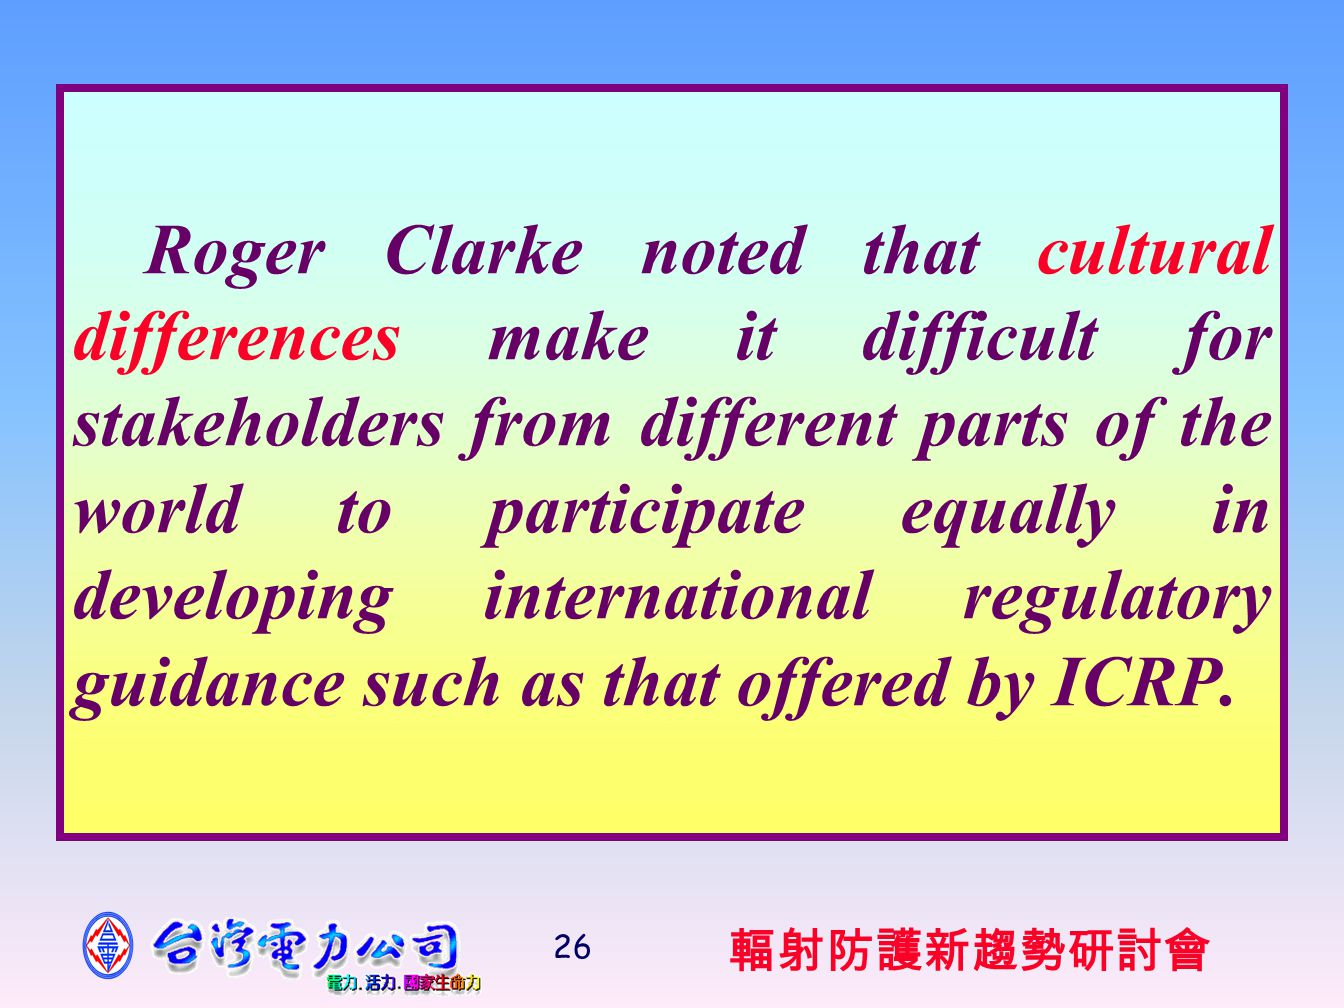 輻射防護新趨勢研討會 26 Roger Clarke noted that cultural differences make it difficult for stakeholders from different parts of the world to participate equally in developing international regulatory guidance such as that offered by ICRP.